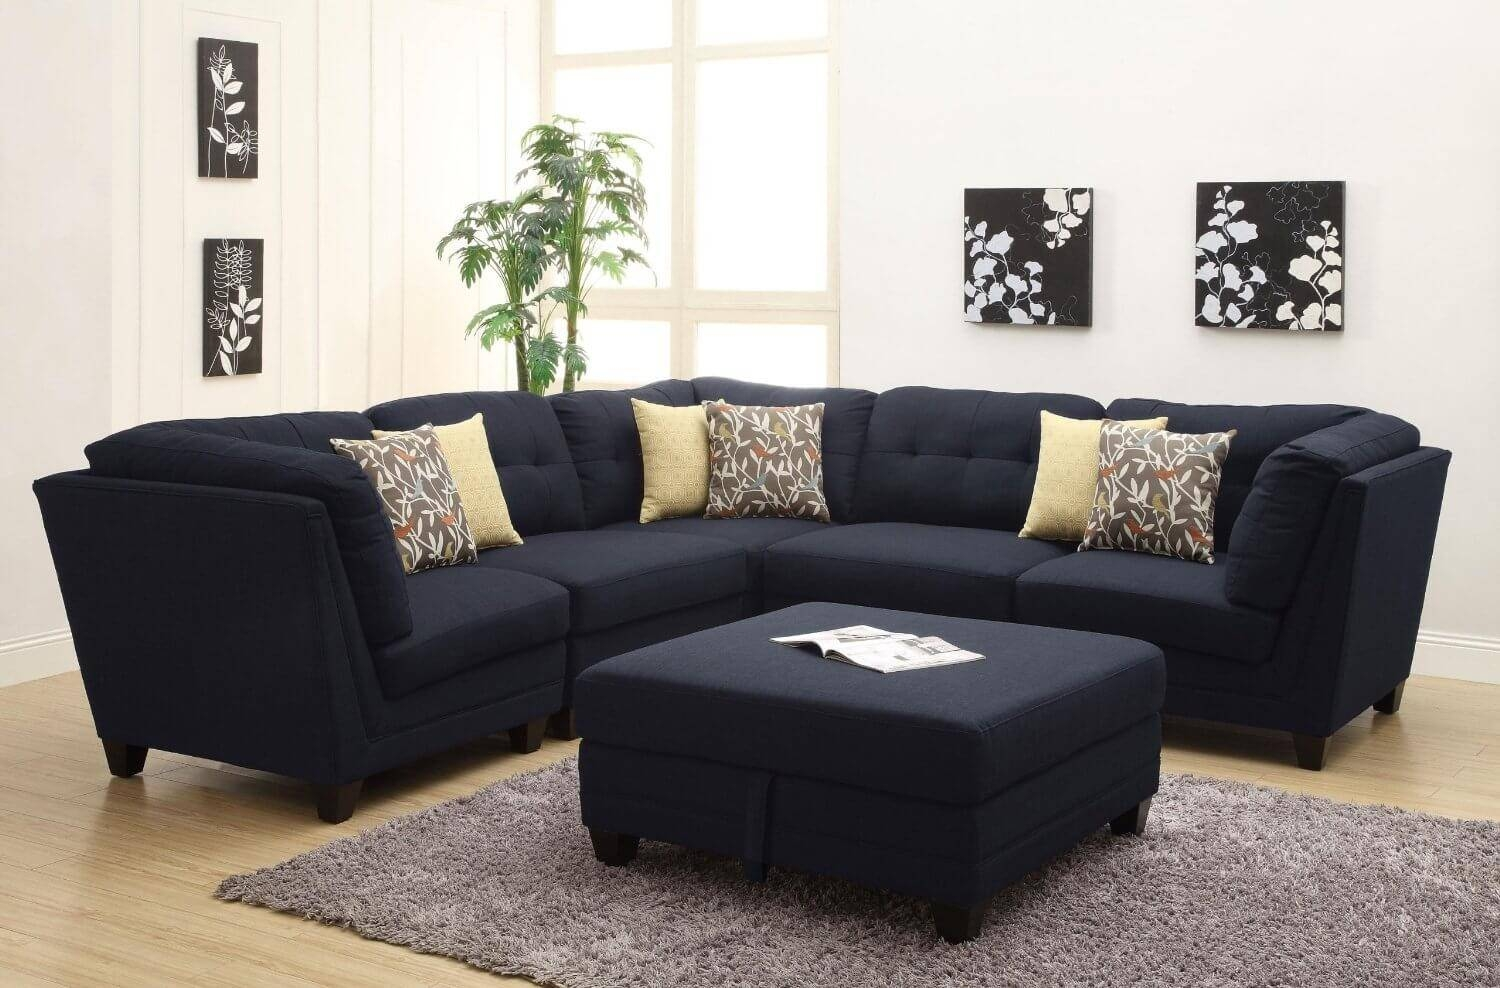 Firm Sectional Sofa - Cleanupflorida pertaining to Discounted Sectional Sofa (Image 10 of 30)